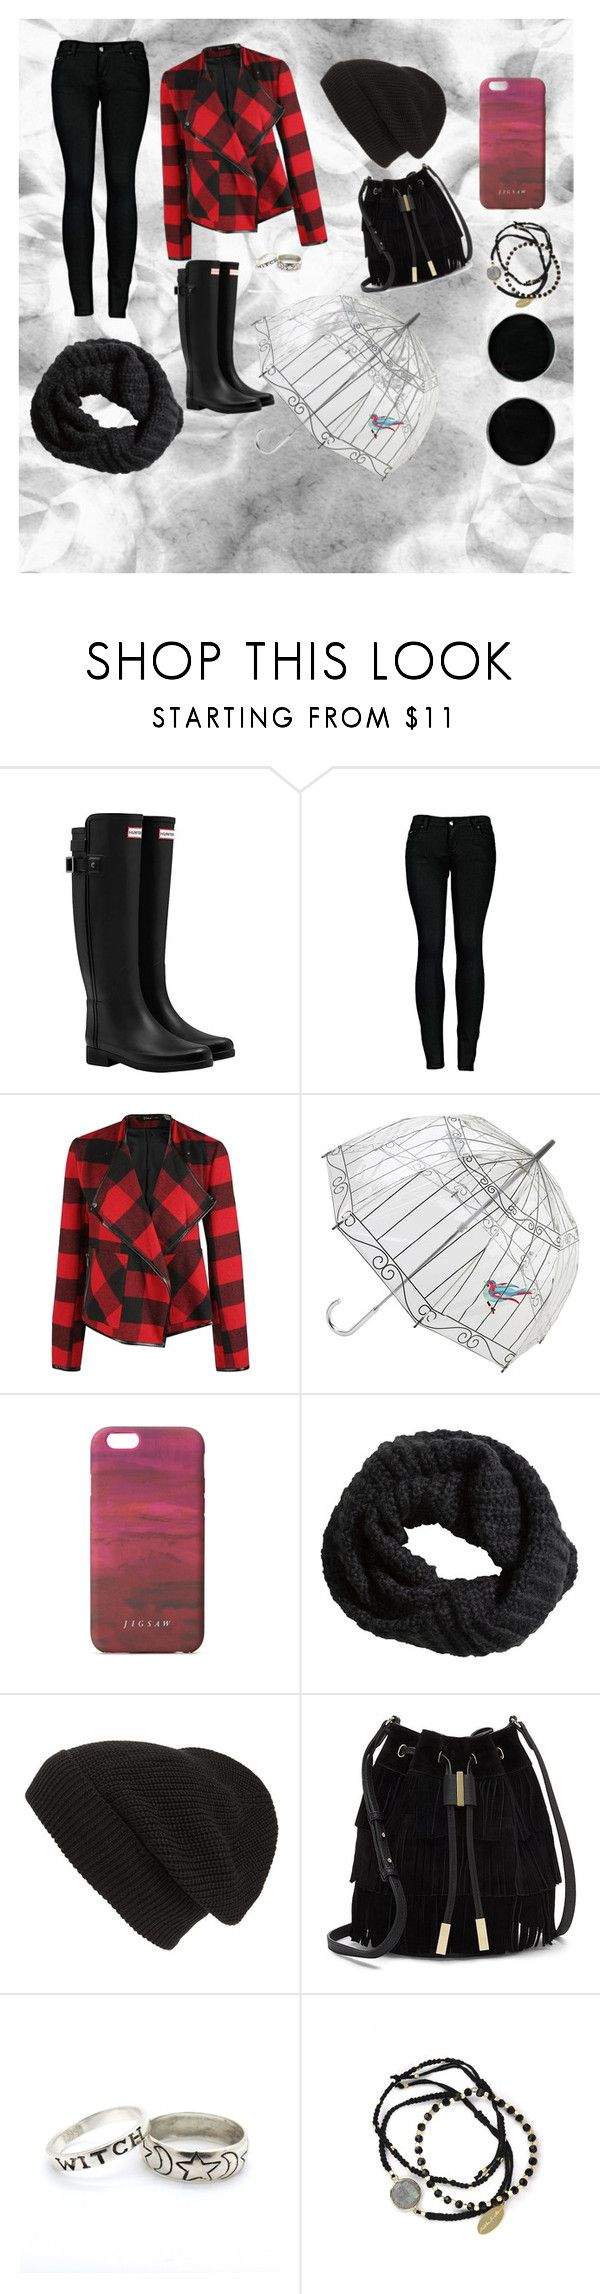 Sin título #13 by dancbc on Polyvore featuring moda, Dex, 2LUV, Hunter, Vince Camuto, Feather & Stone, AeraVida, Lulu Guinness, Jigsaw and Phase 3